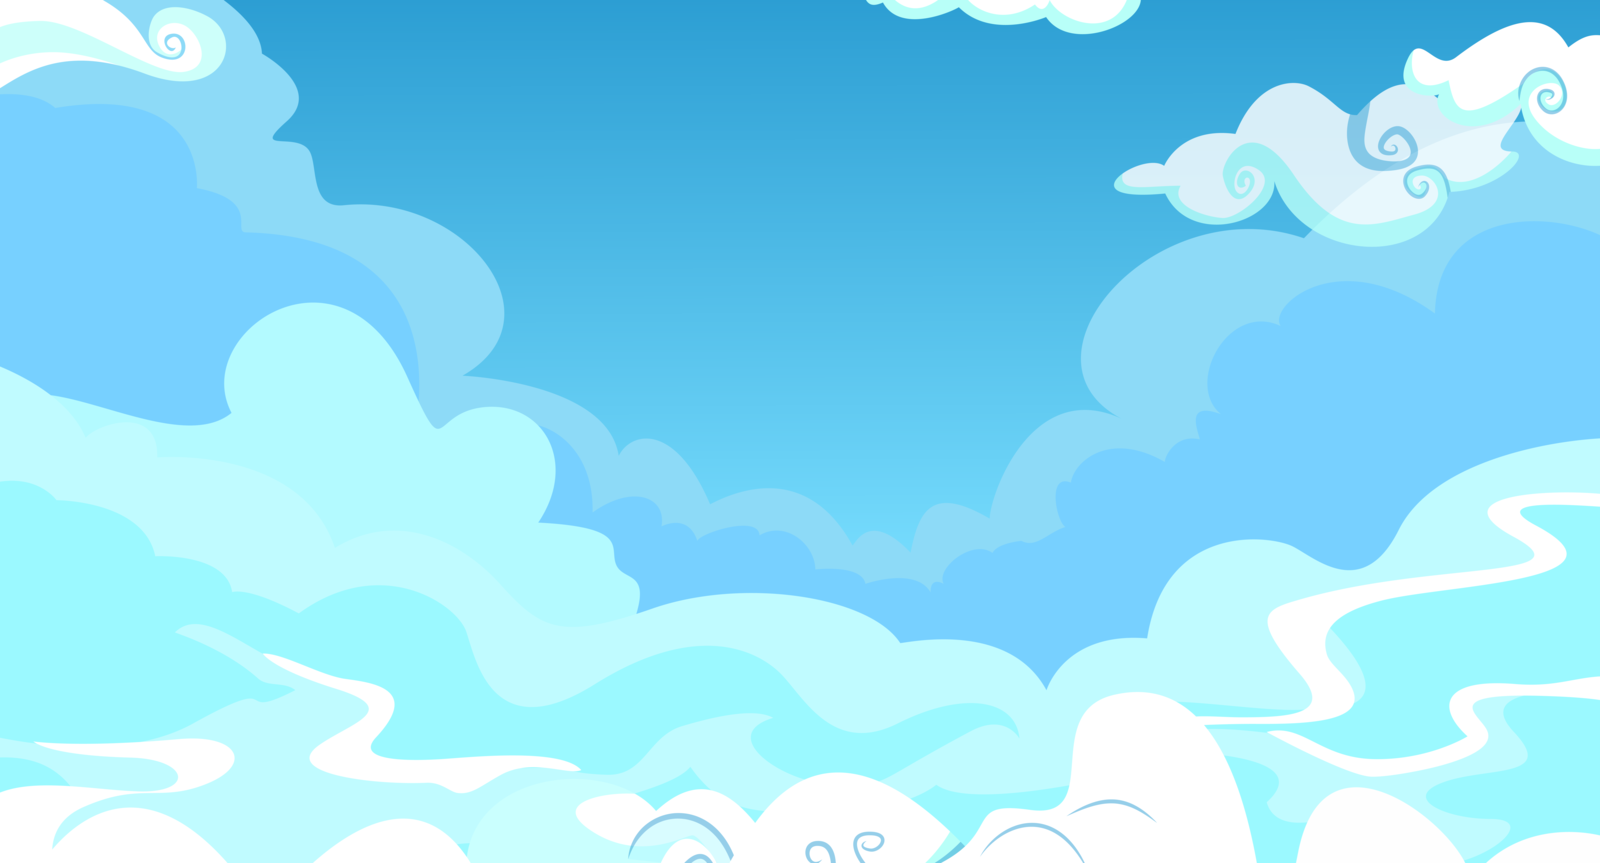 Blue background clipart